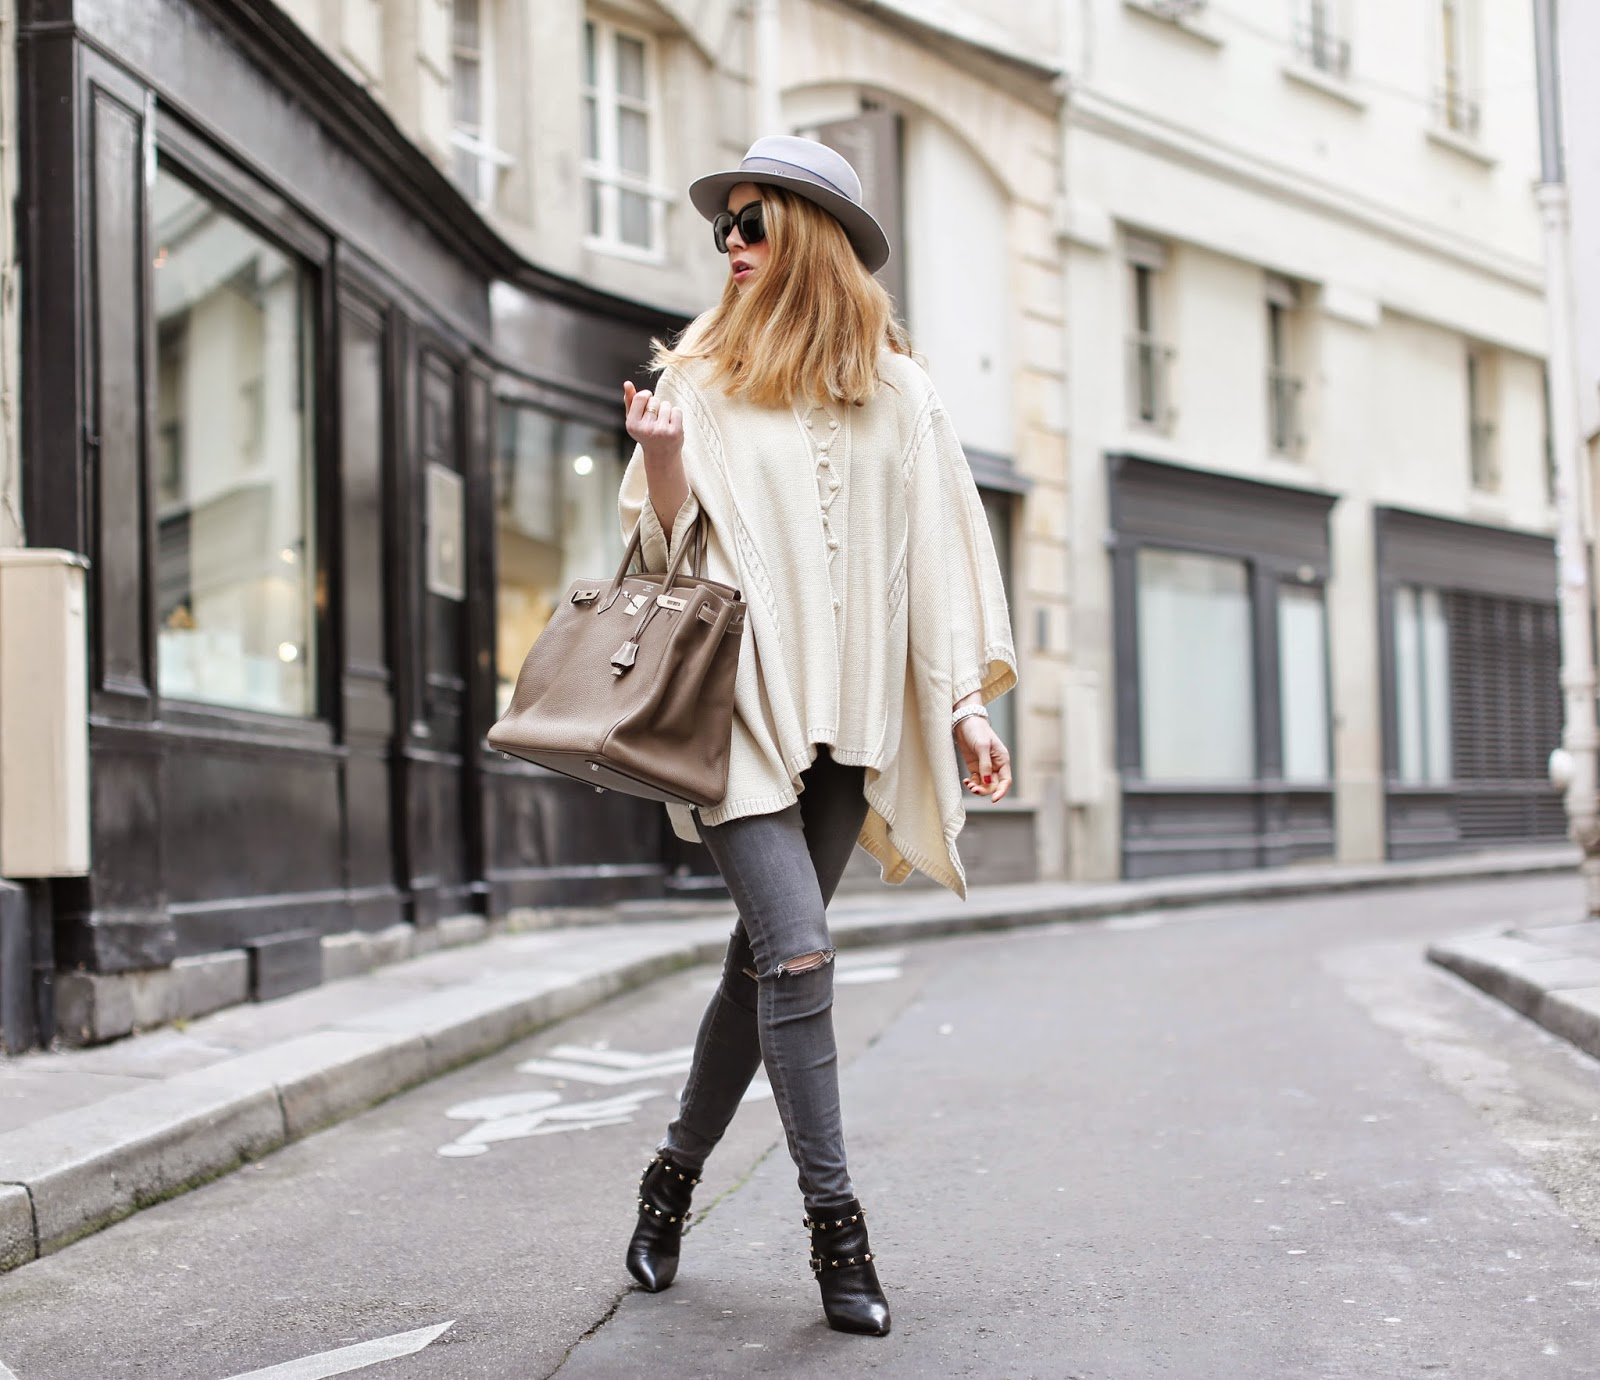 the outnet, temperley, valentino, birkin, maison michel topshop, saint germain paris, fashion blogger, streetstyle